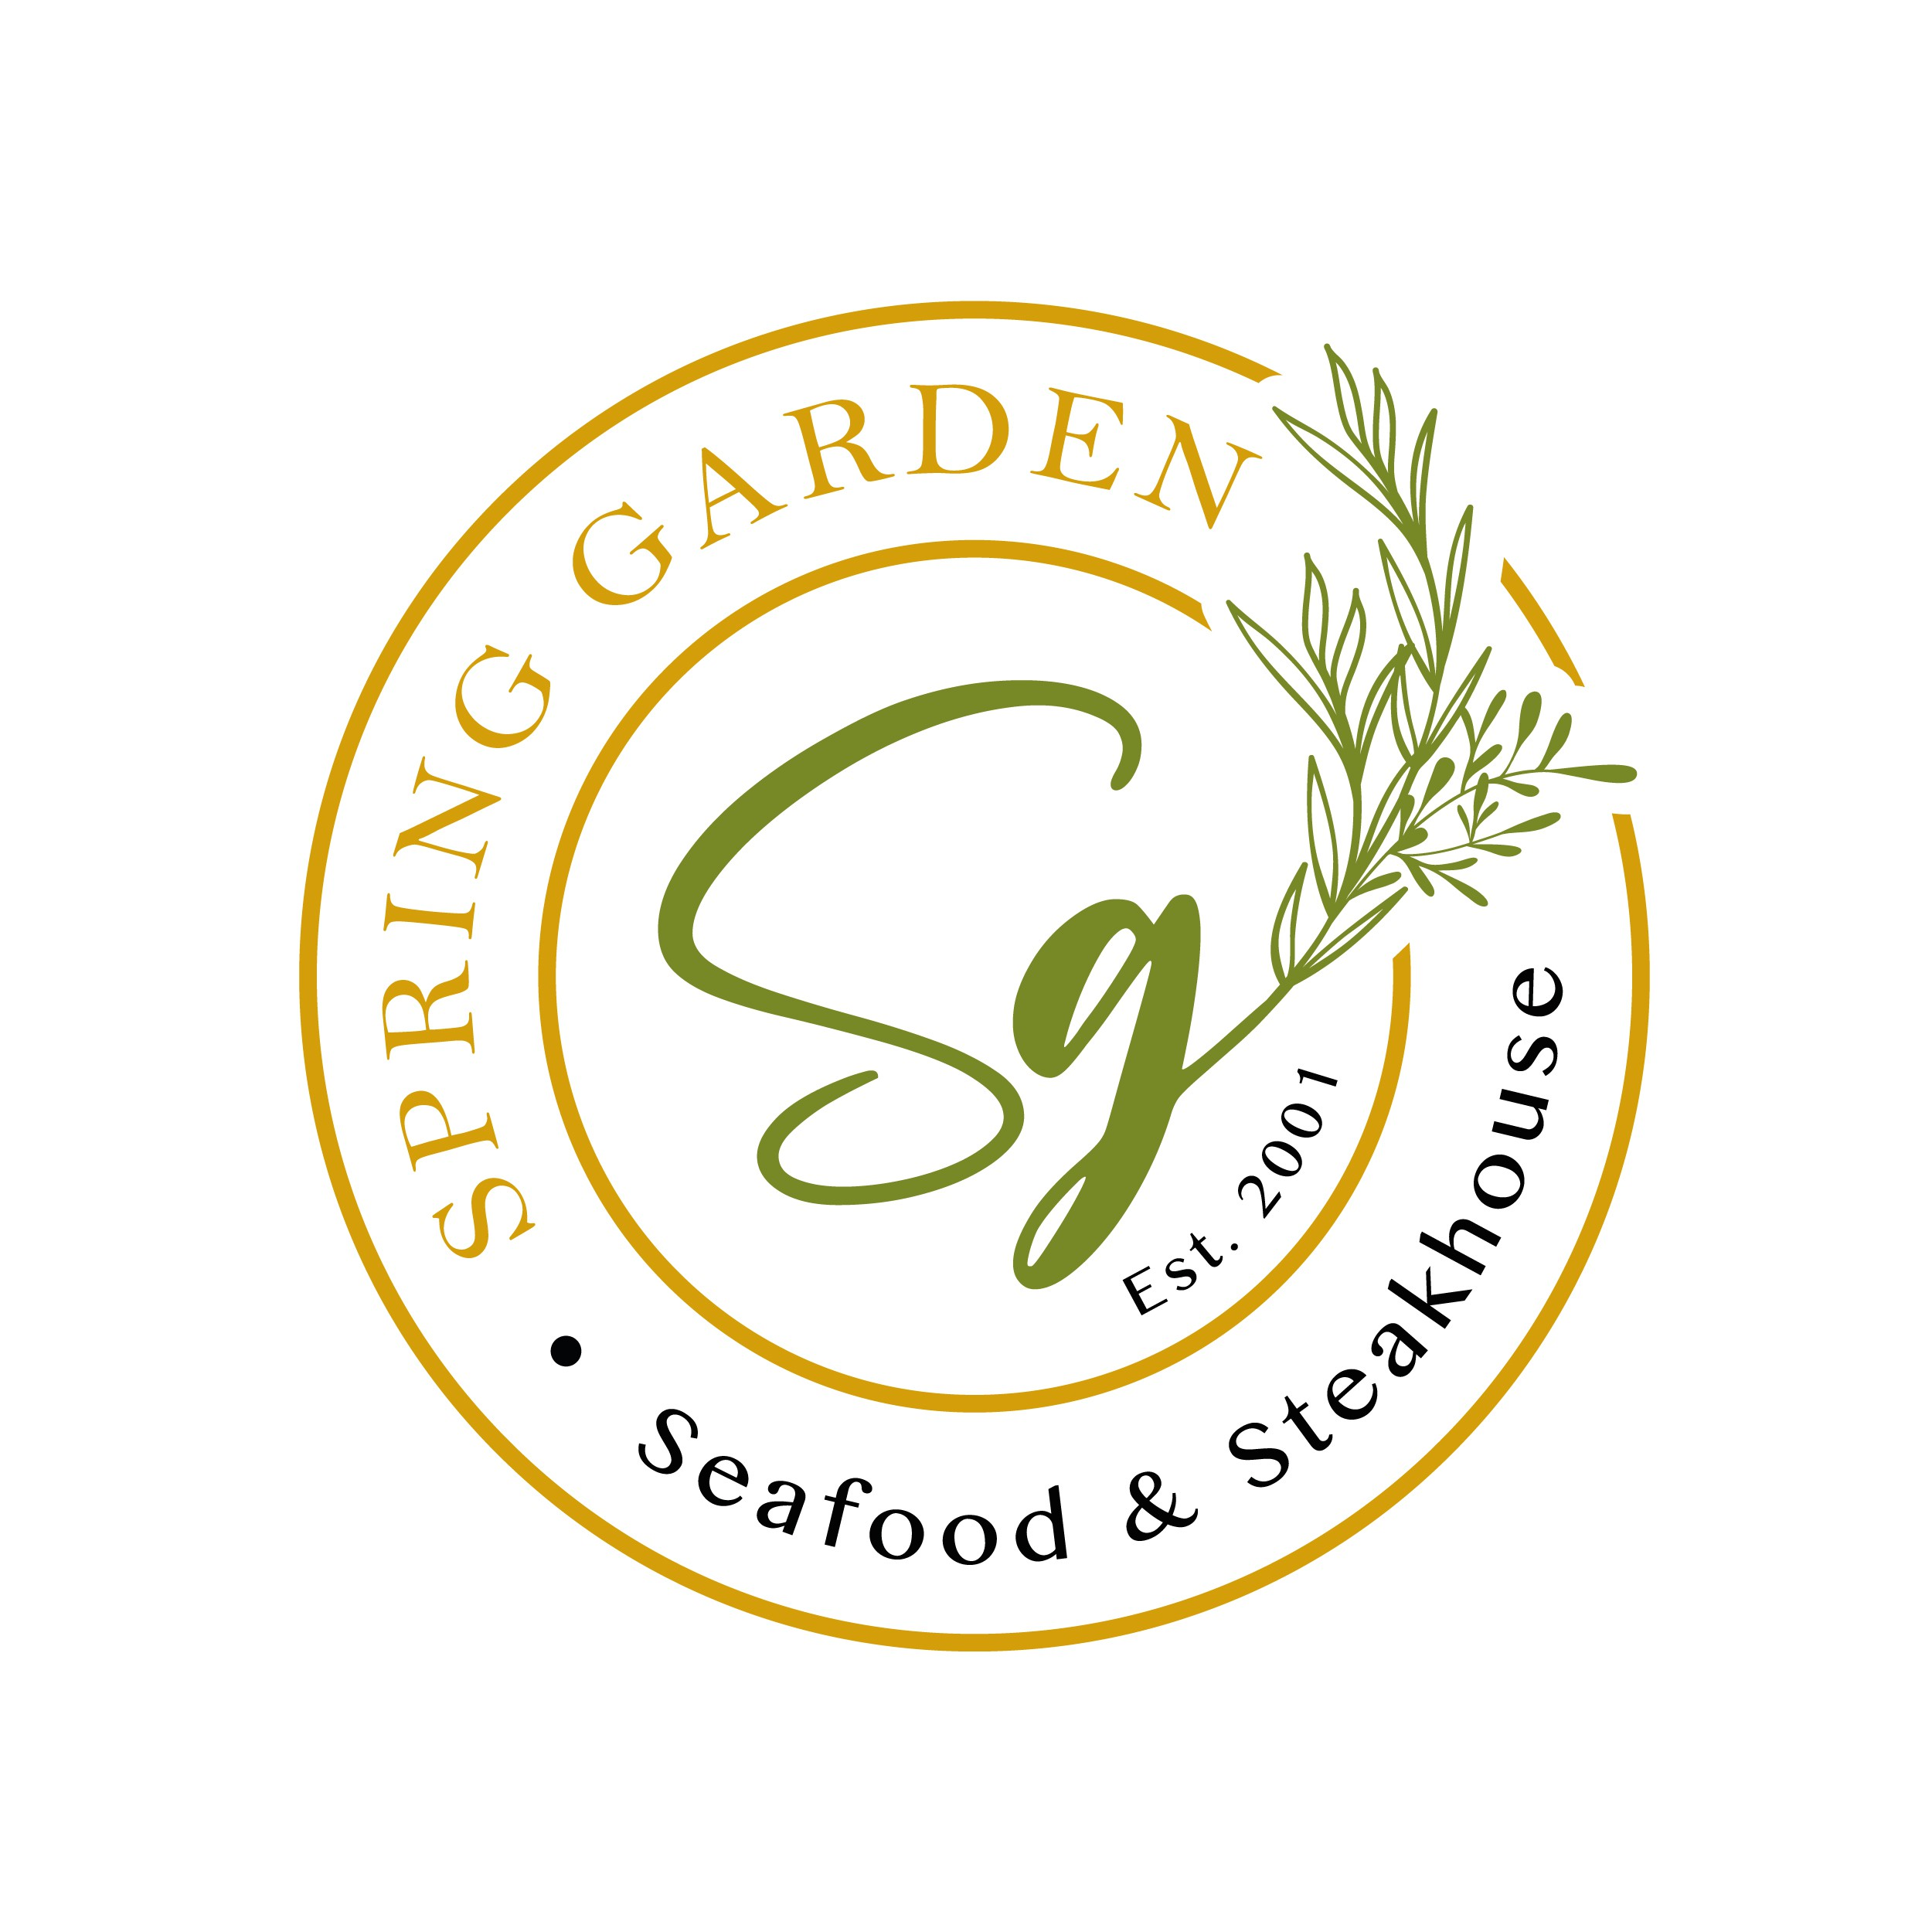 Need a new logo for an established restaurant